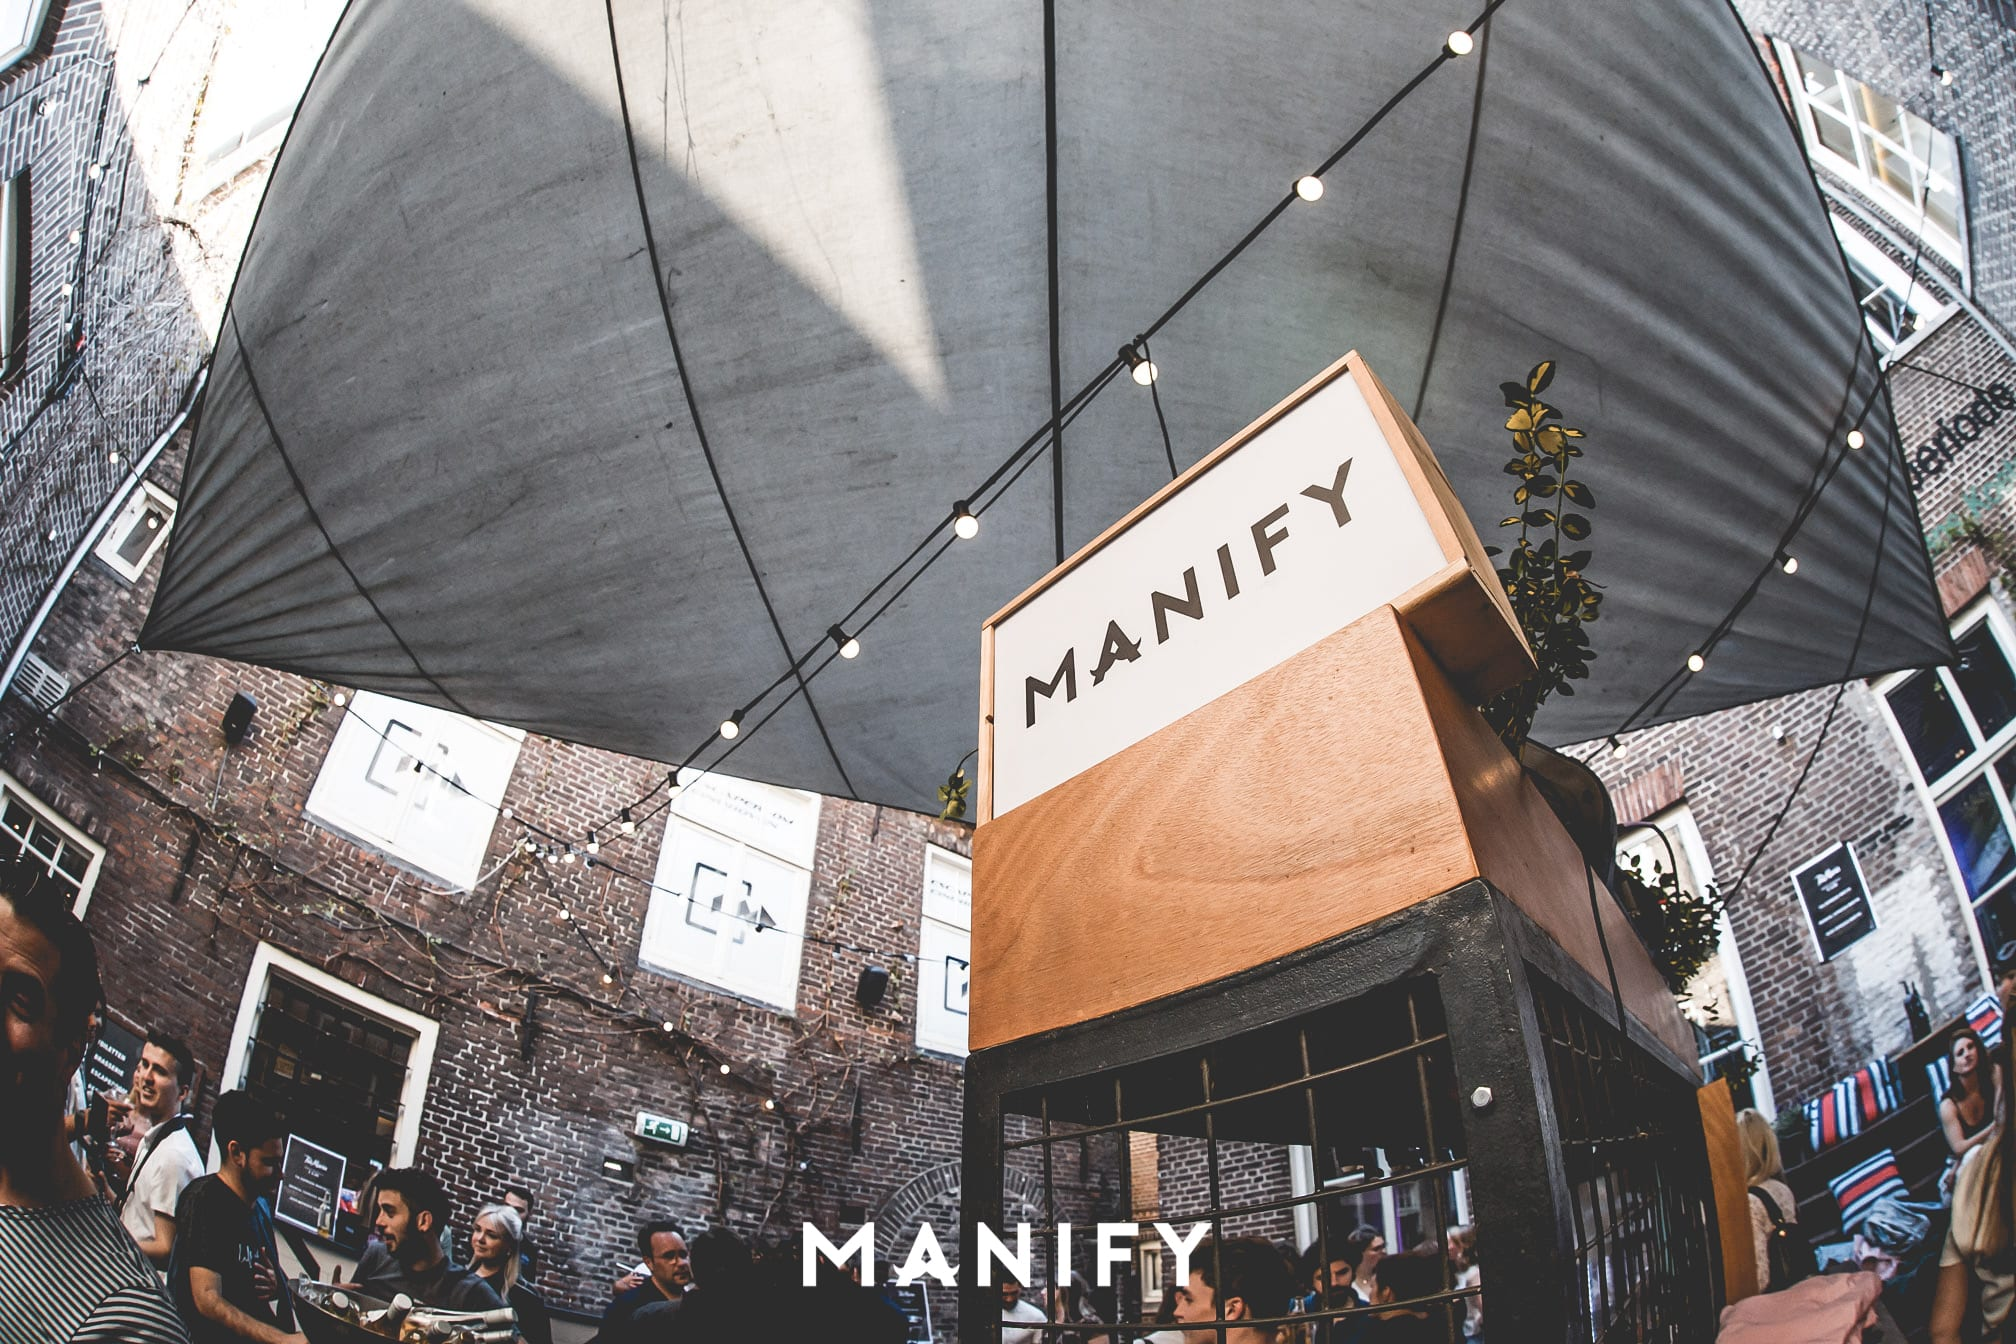 Manify_Out_of_office_EHV-WM-62-manify